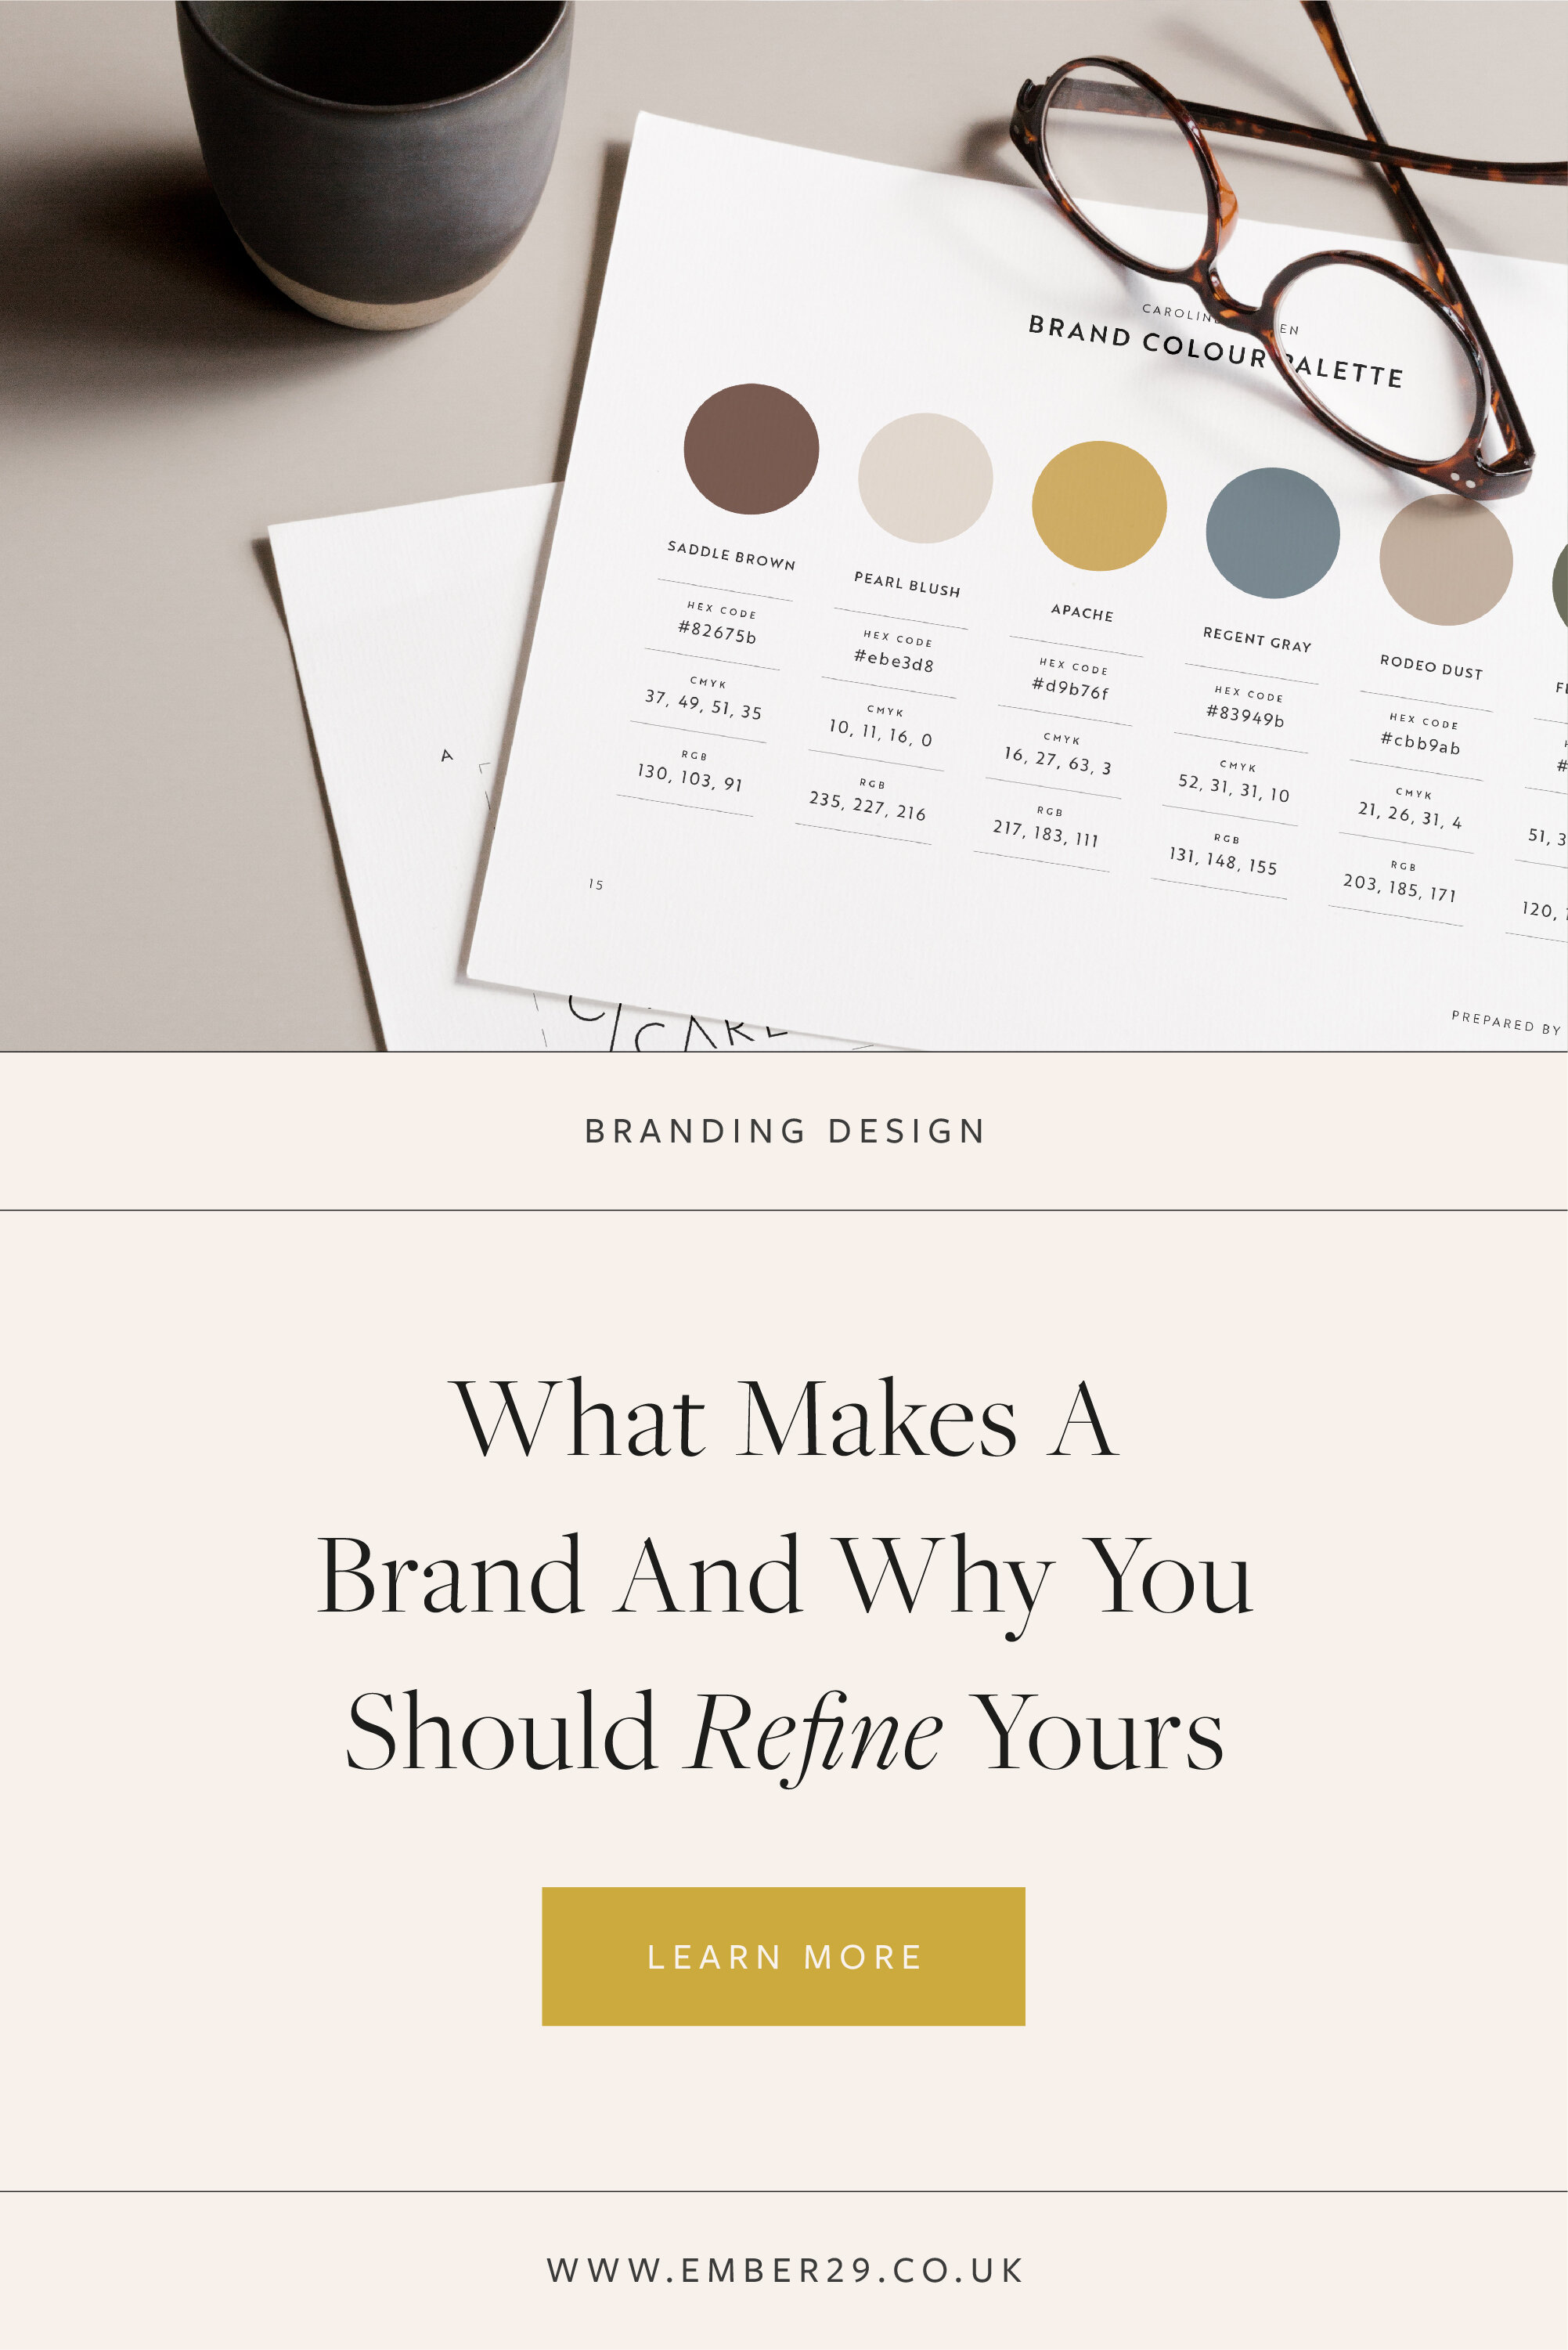 What Is A Brand And Why You Should Refine Yours